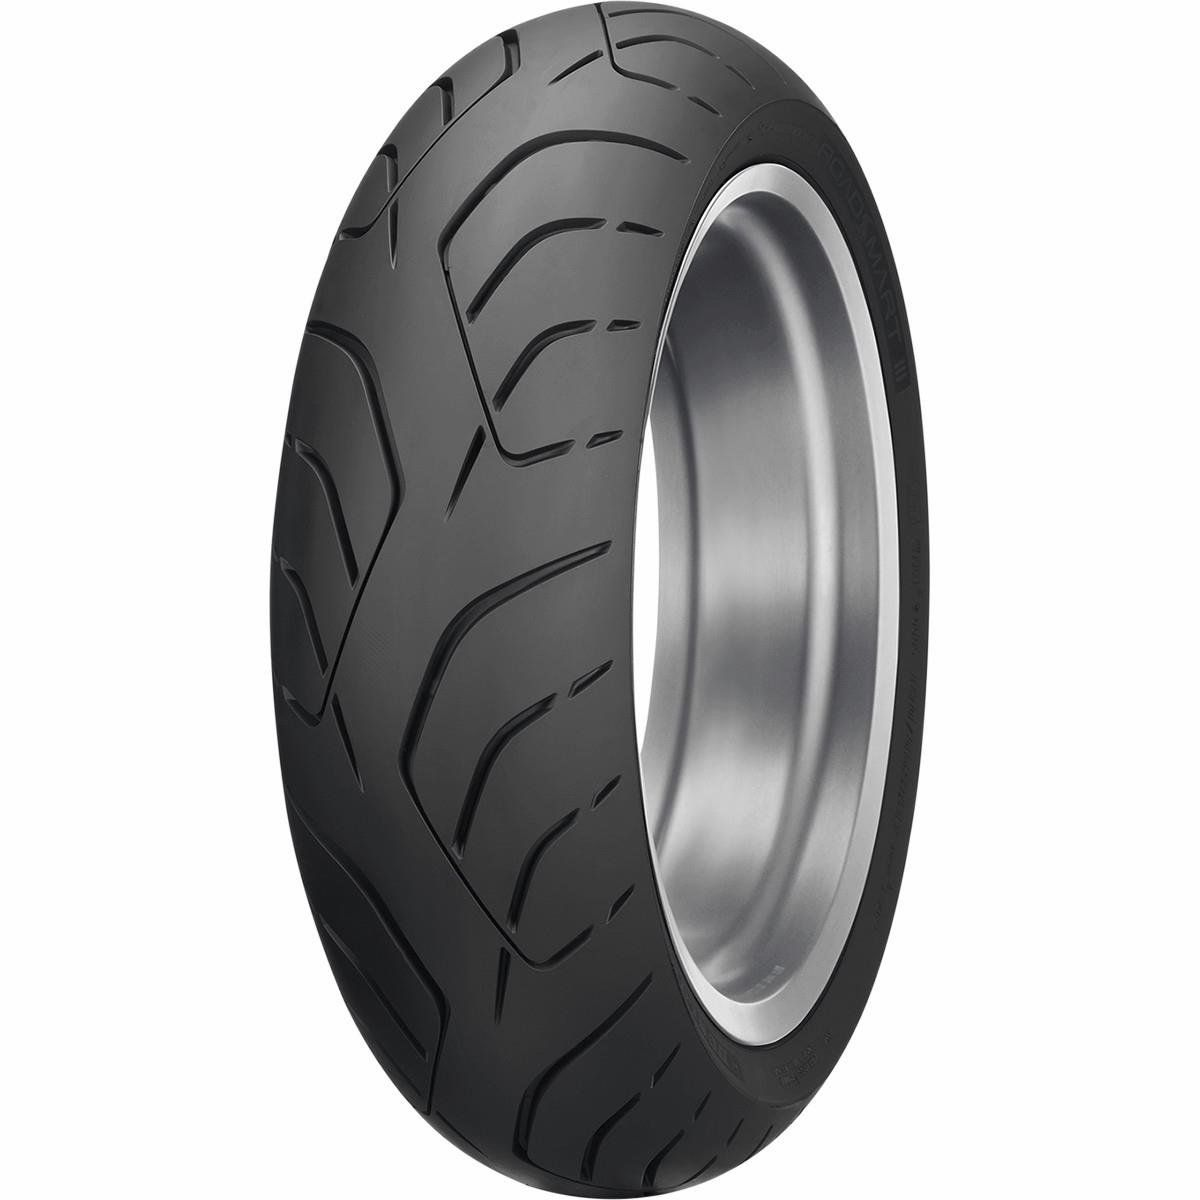 Dunlop Roadsmart 3 Tires Rear 160 60zr 17 Radial Find Out More About The Great Product At The Image Link This Is An A Motorcycle Tires Sport Touring Dunlop